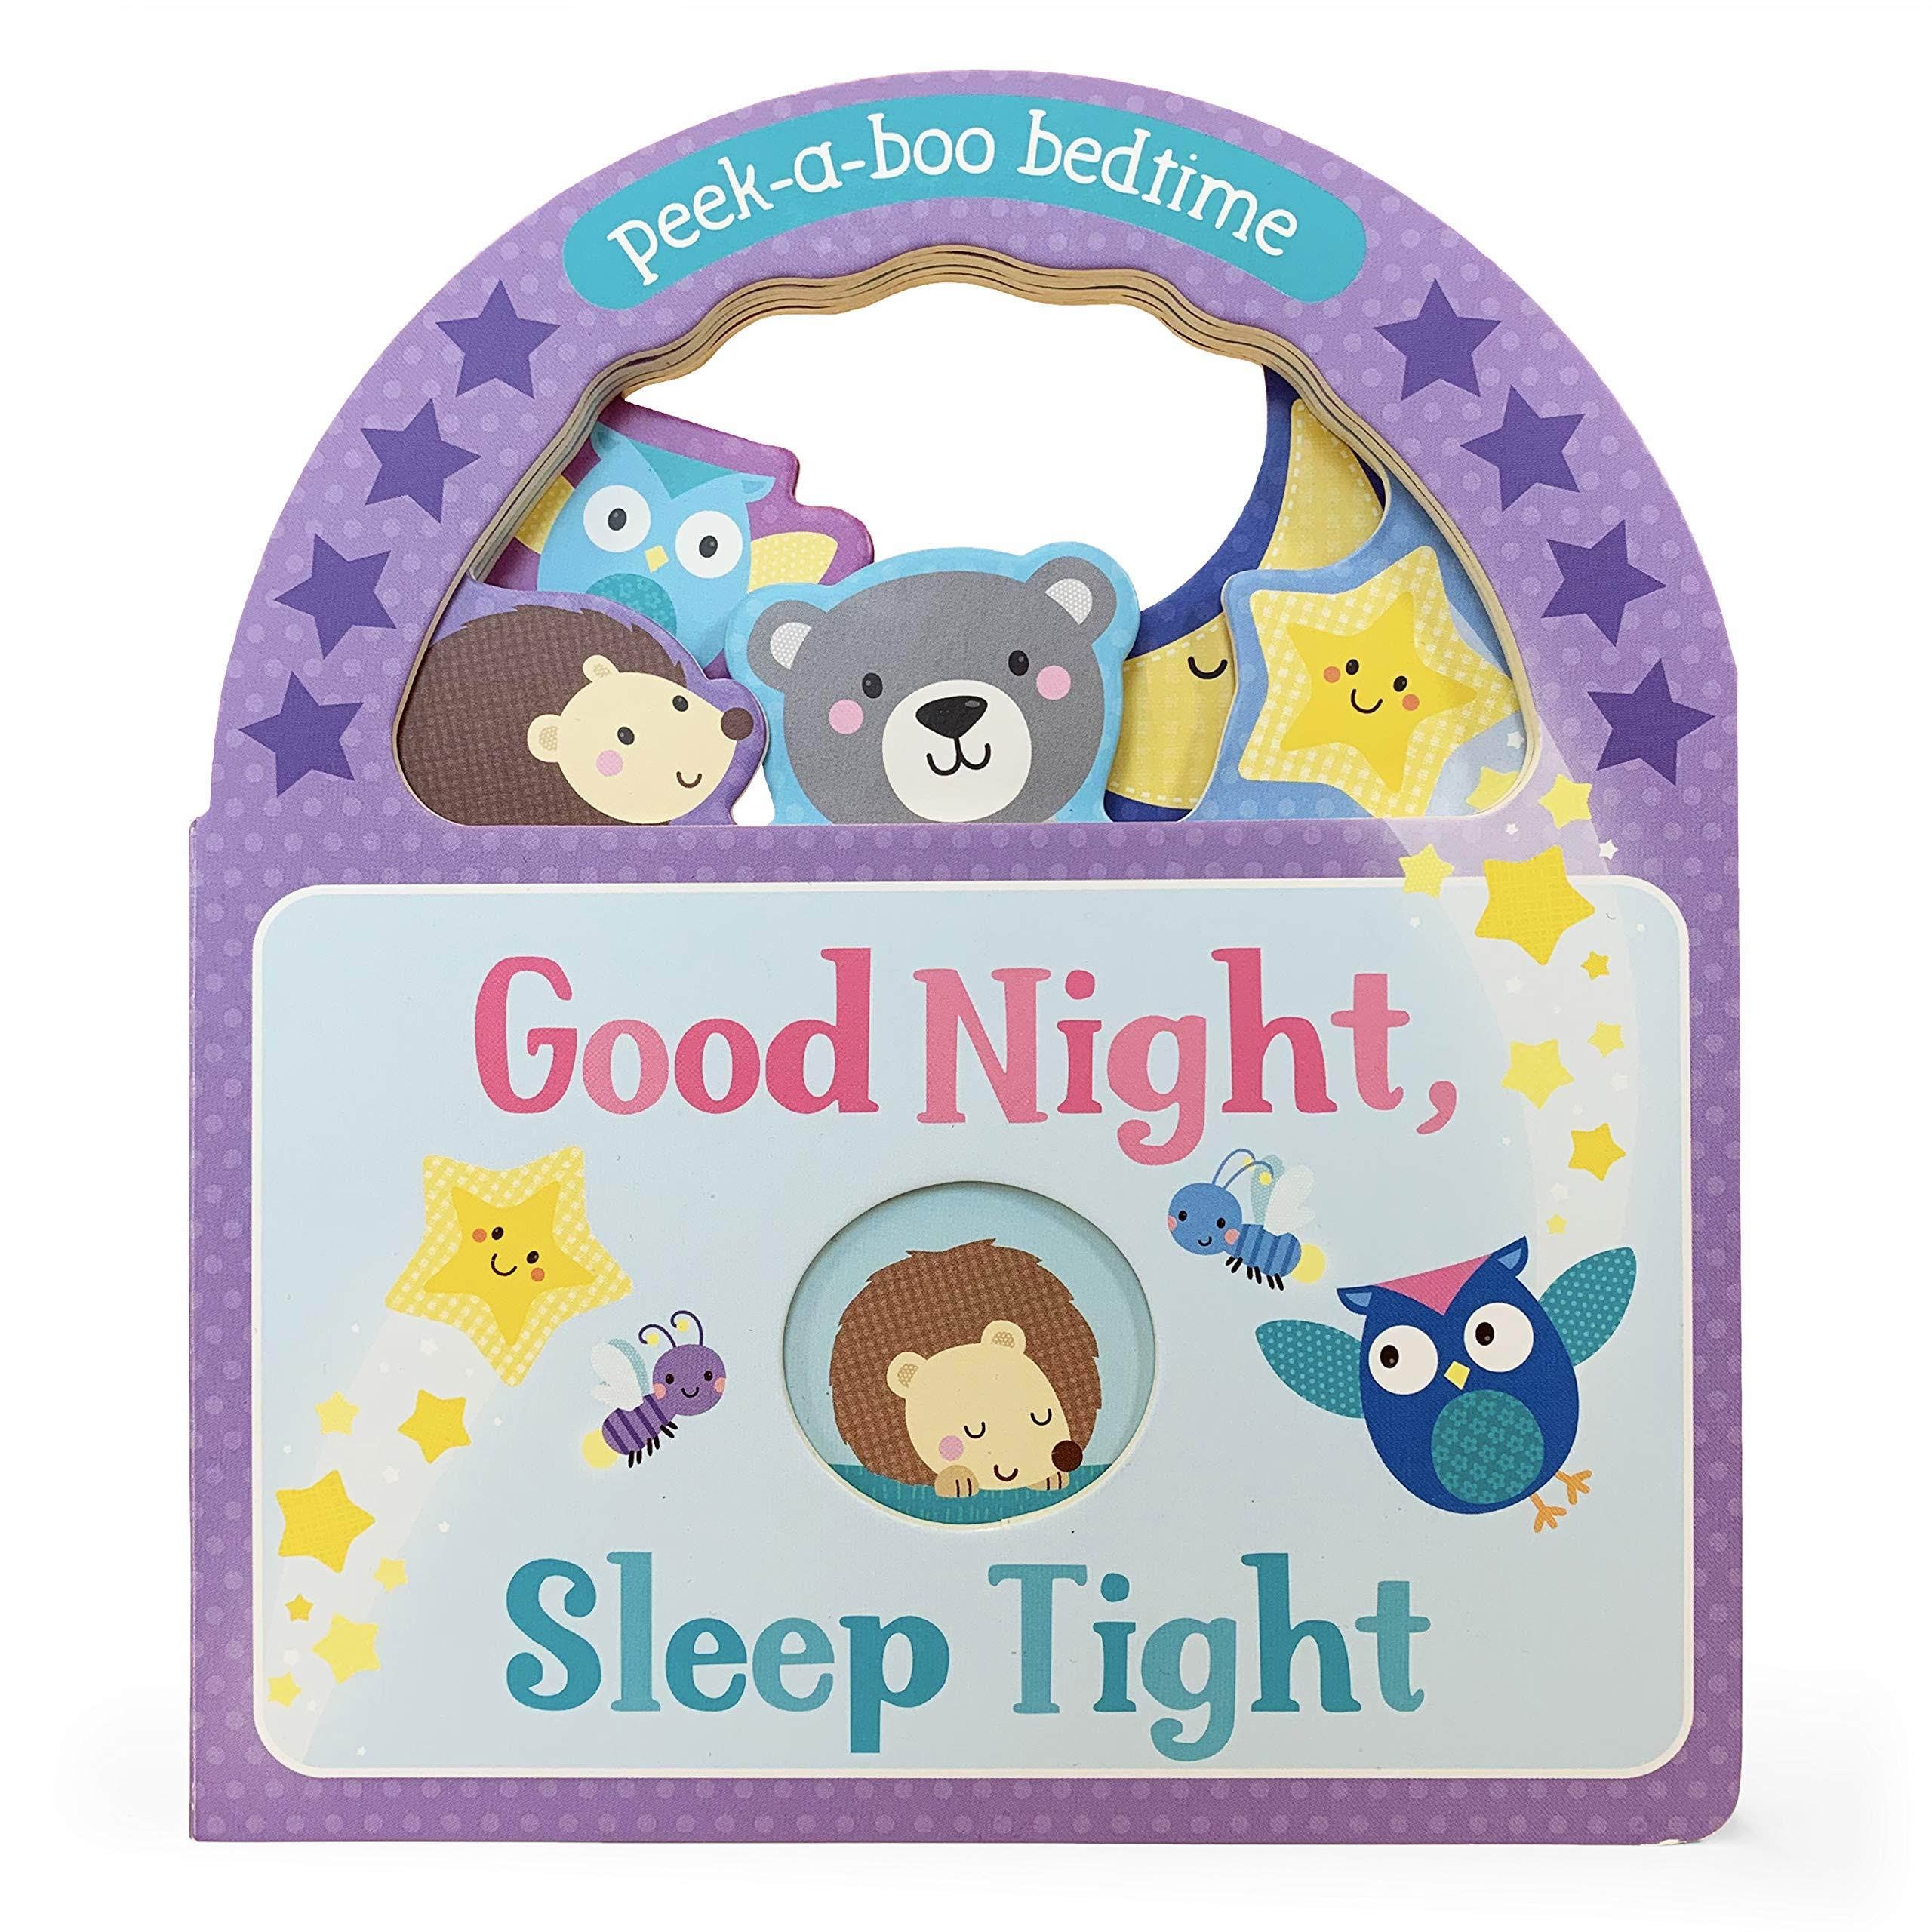 Goodnight, Sleep Tight: Peek-a-boo Bedtime